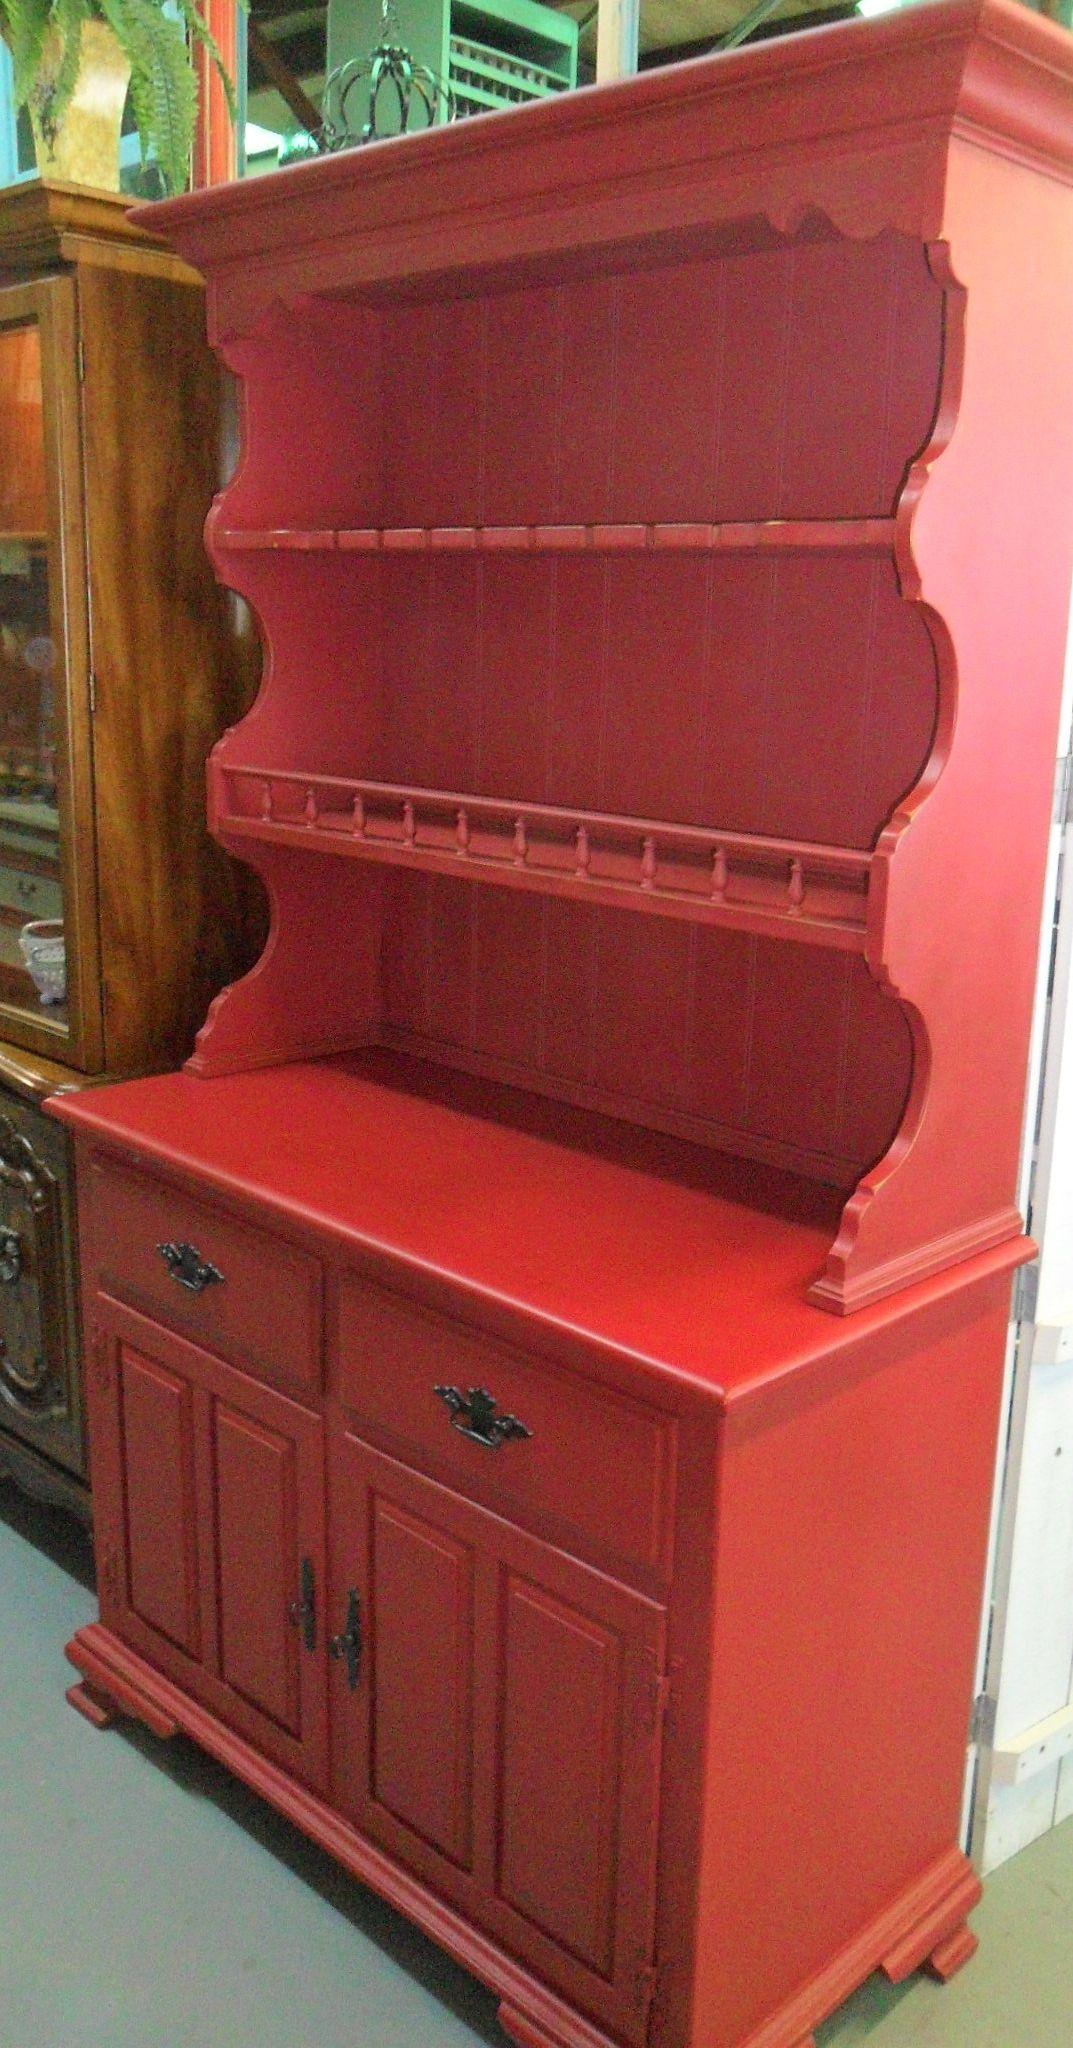 Wise Owl Antique Red Paint Chalk Furniture Upholstery